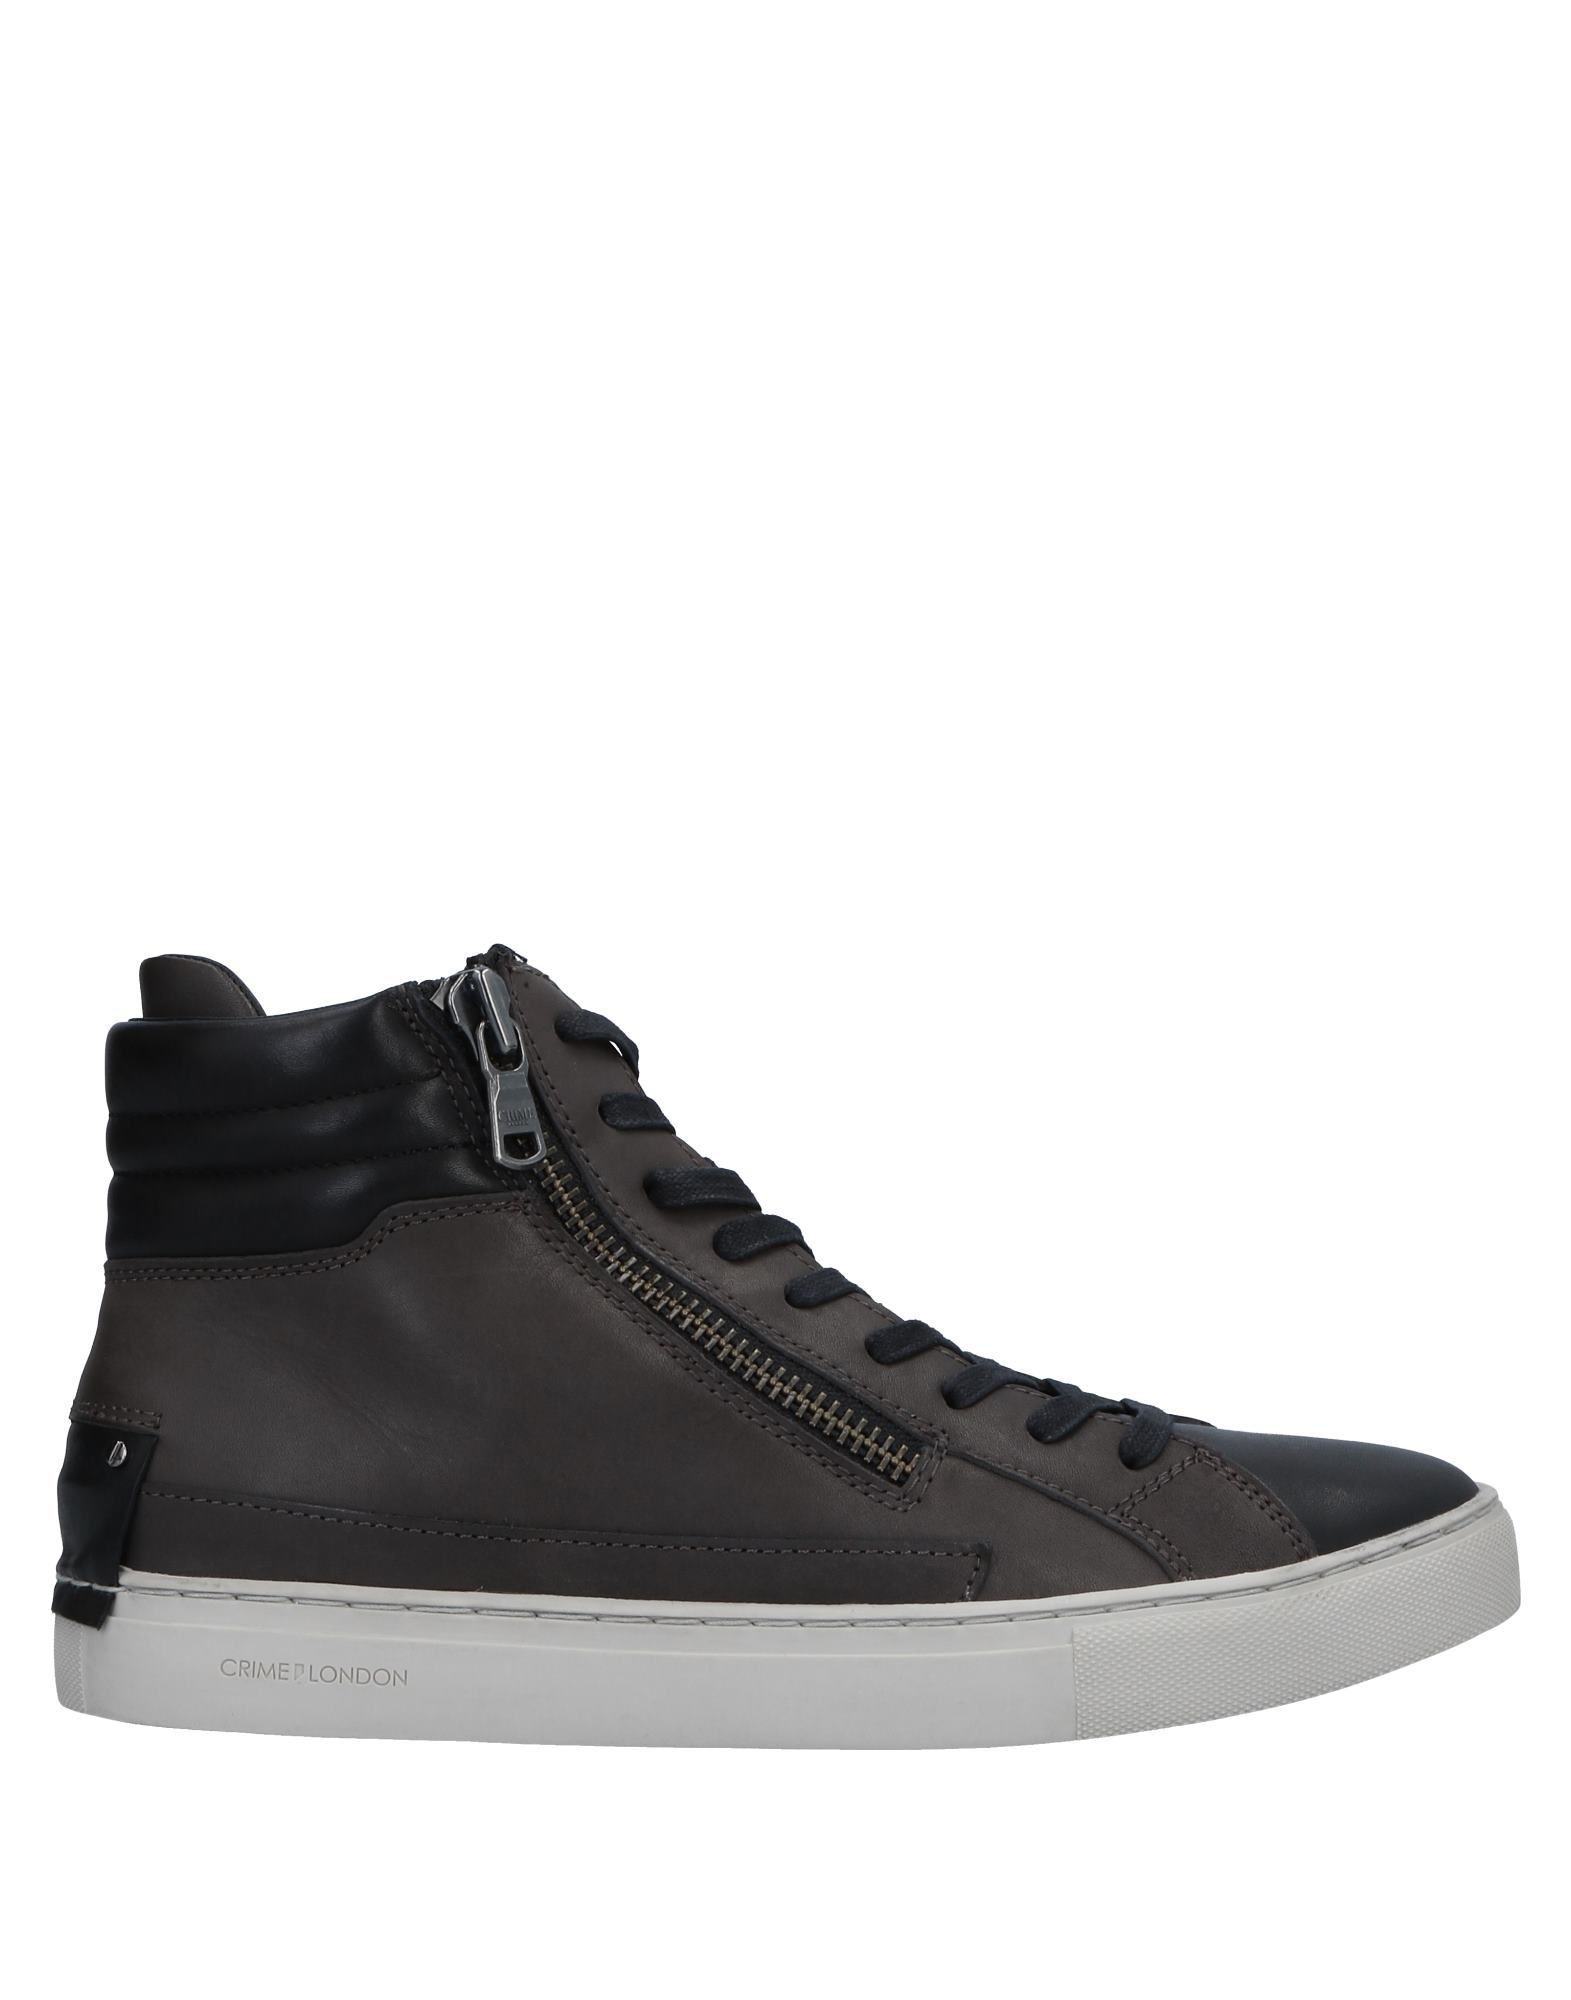 Rabatt echte Schuhe Crime London Sneakers Herren  11499042RJ